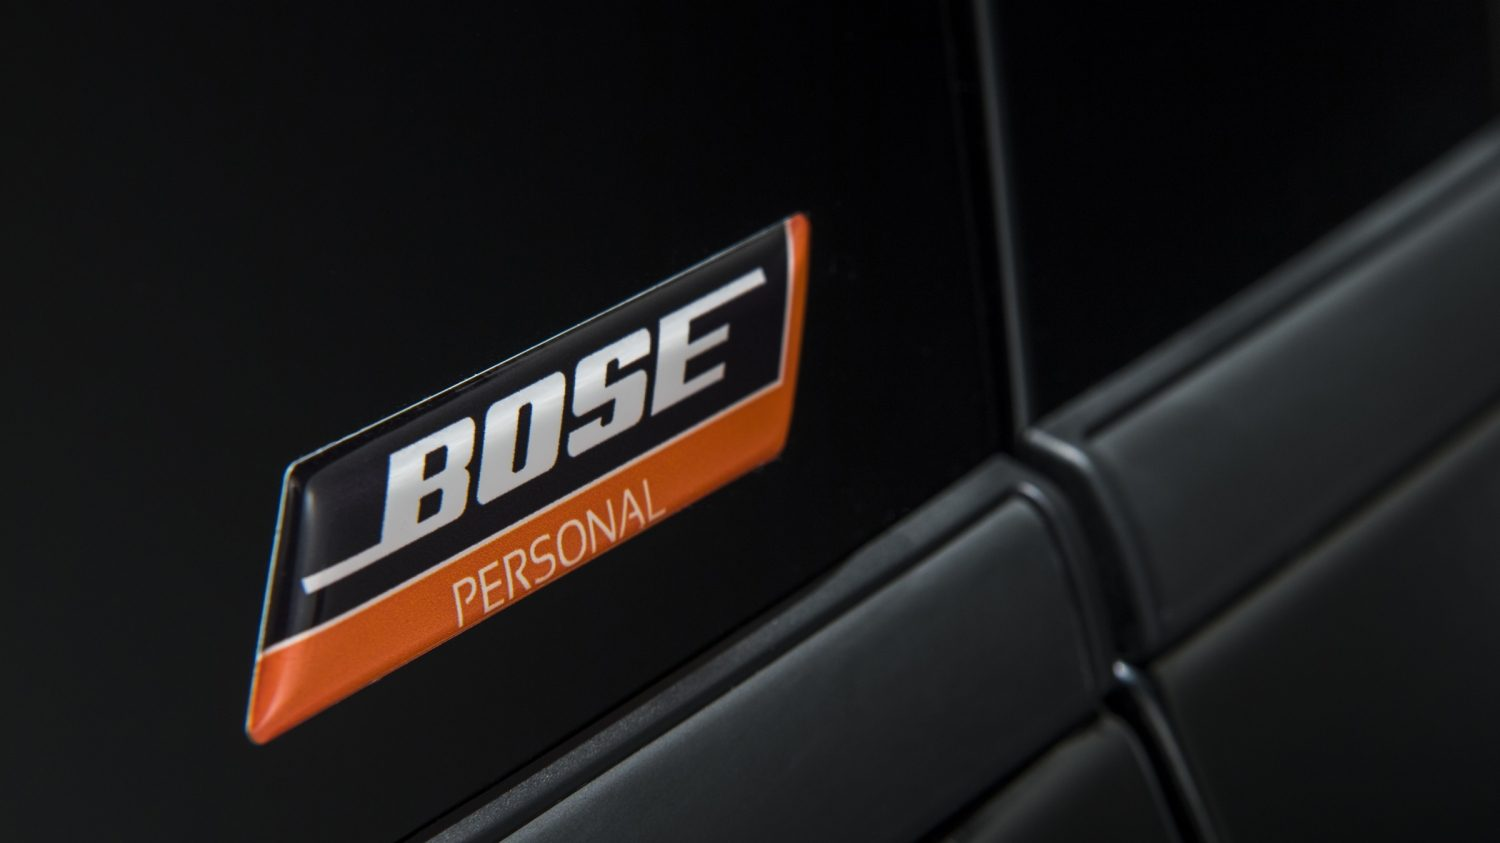 Bose® Personal®-badge